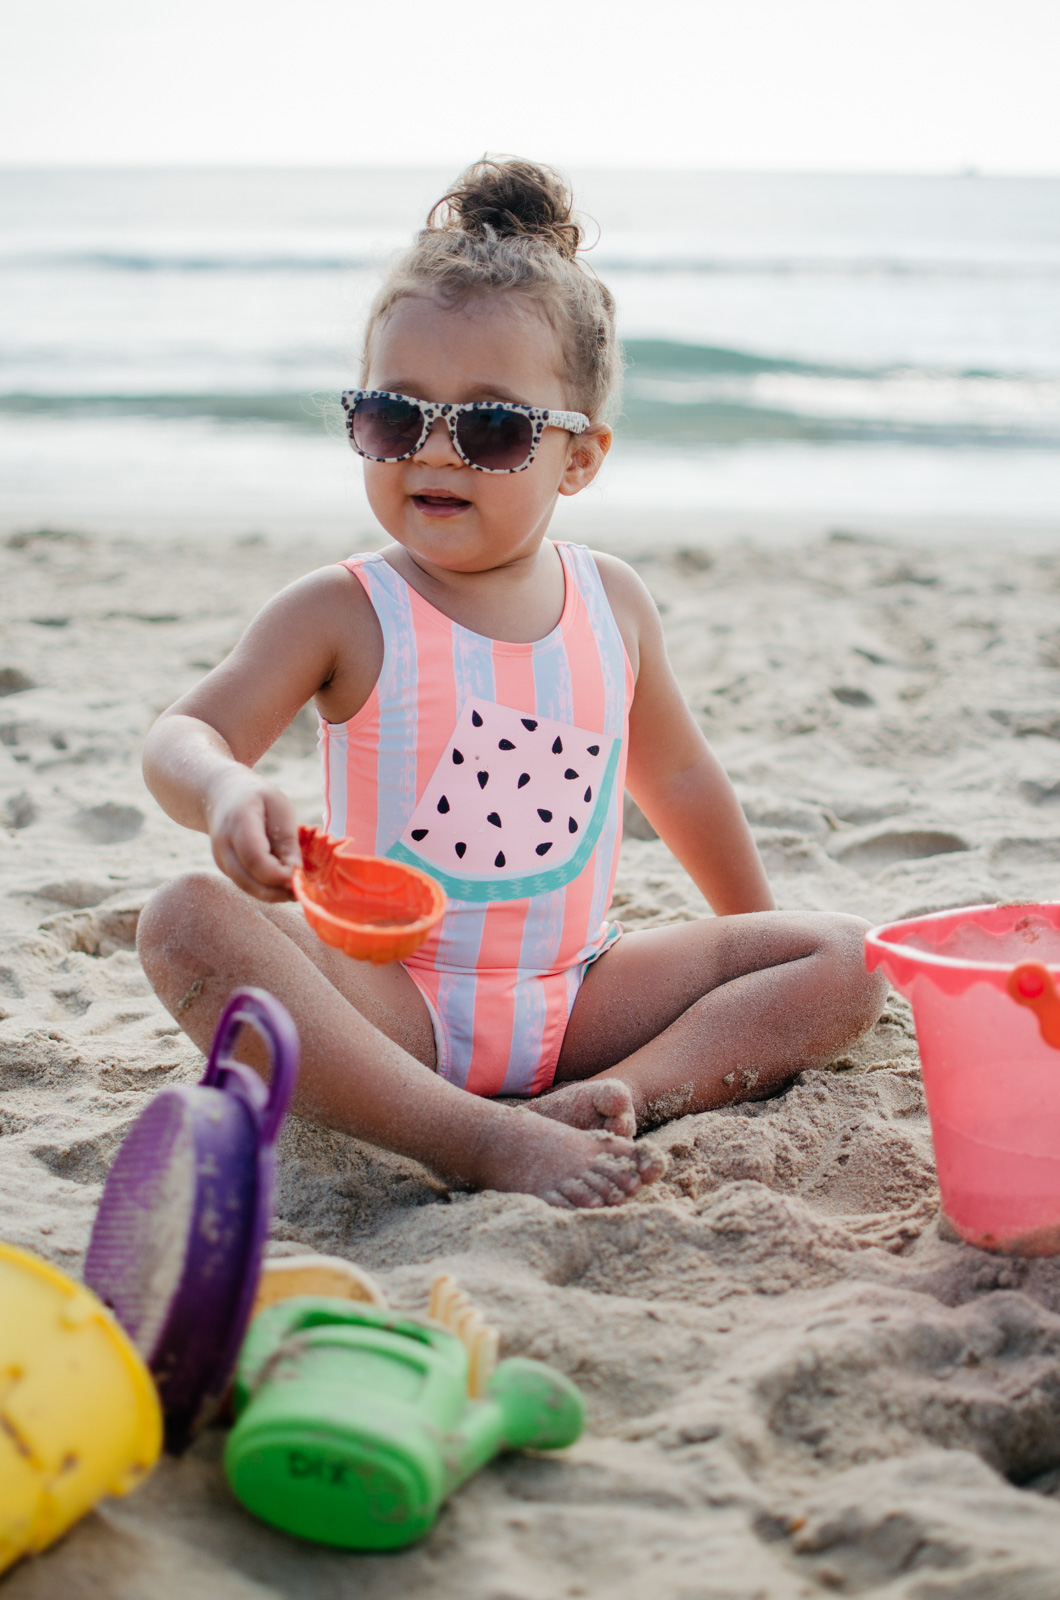 beach packing list for toddlers - top five tips for hitting the beach with toddlers! bylaurenm.com